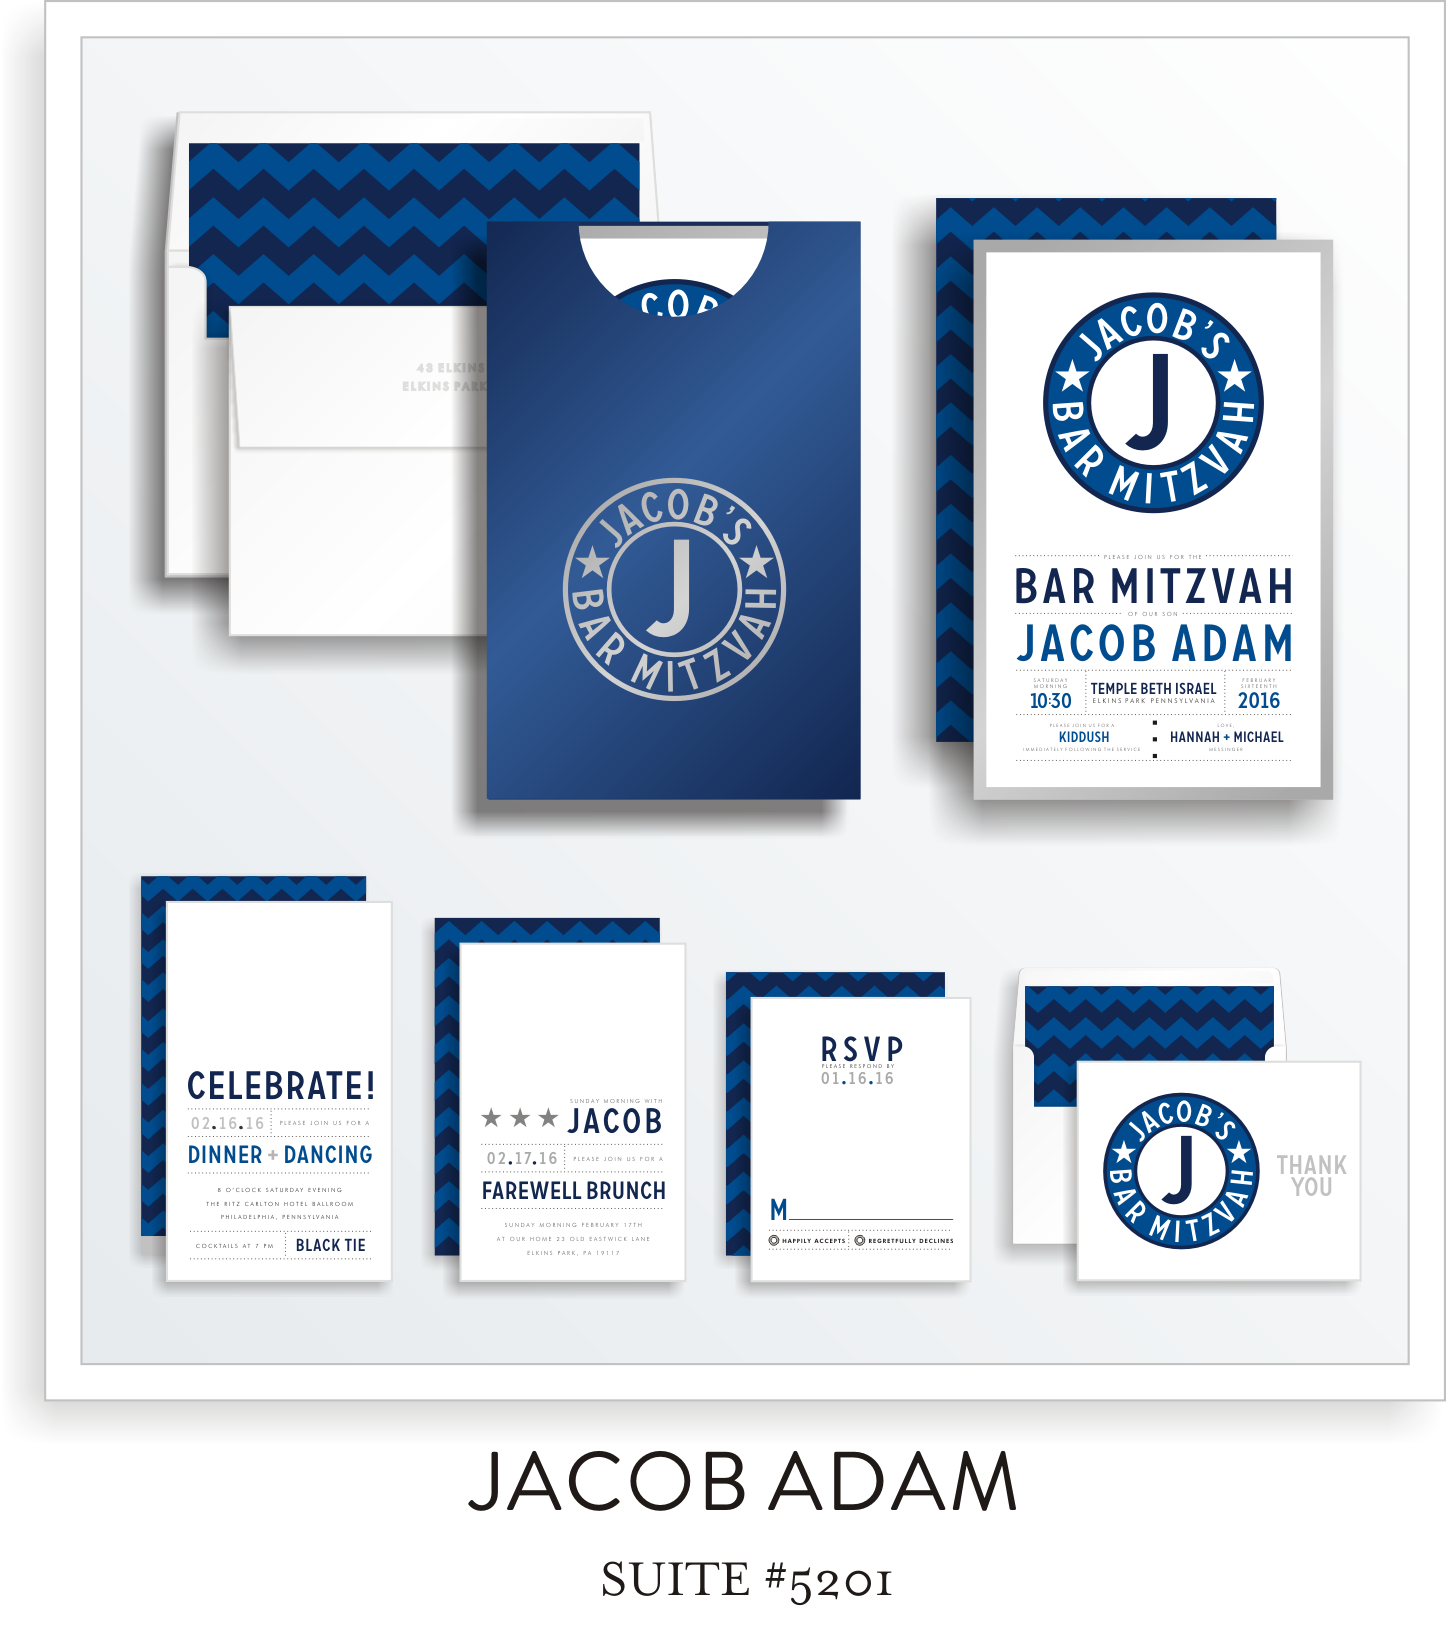 Copy of Copy of <a href=/bar-mitzvah-invitations-5201>Suite Details→</a><strong><a href=/jacob-adam-in-colors>see more colors→</a></strong>